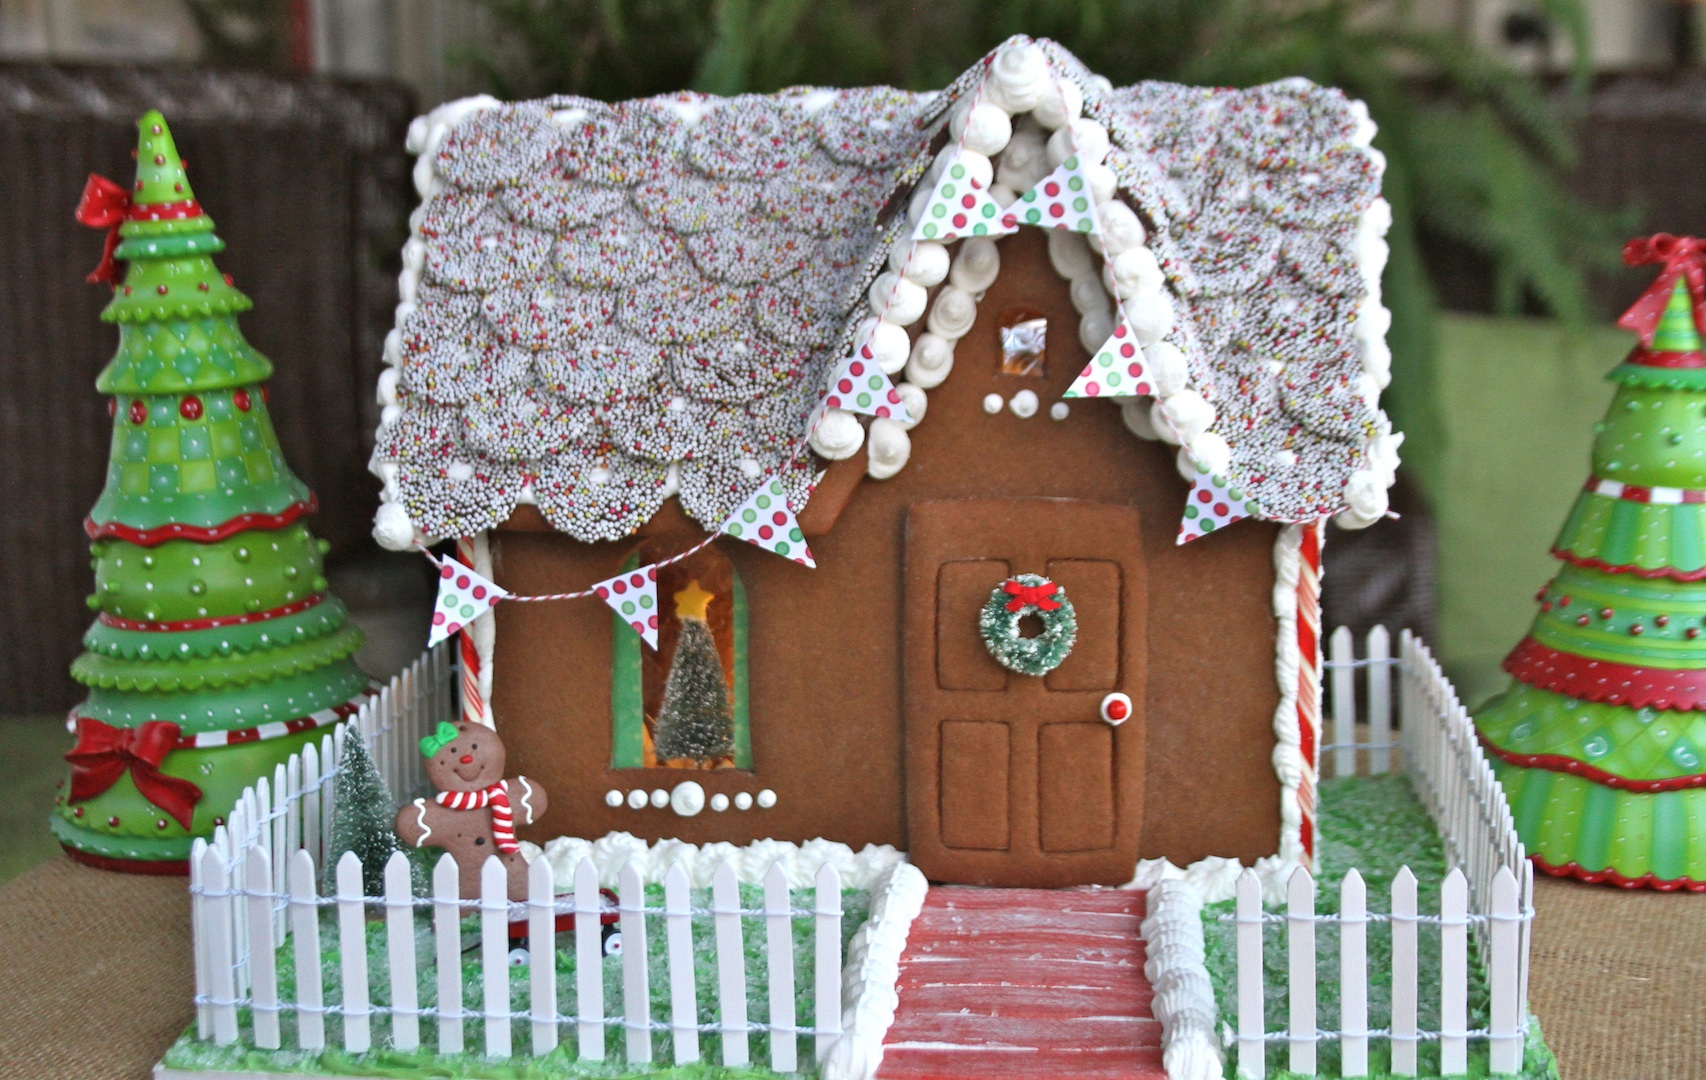 How to make build a gingerbread house with photos recipe for How do you make a gingerbread house